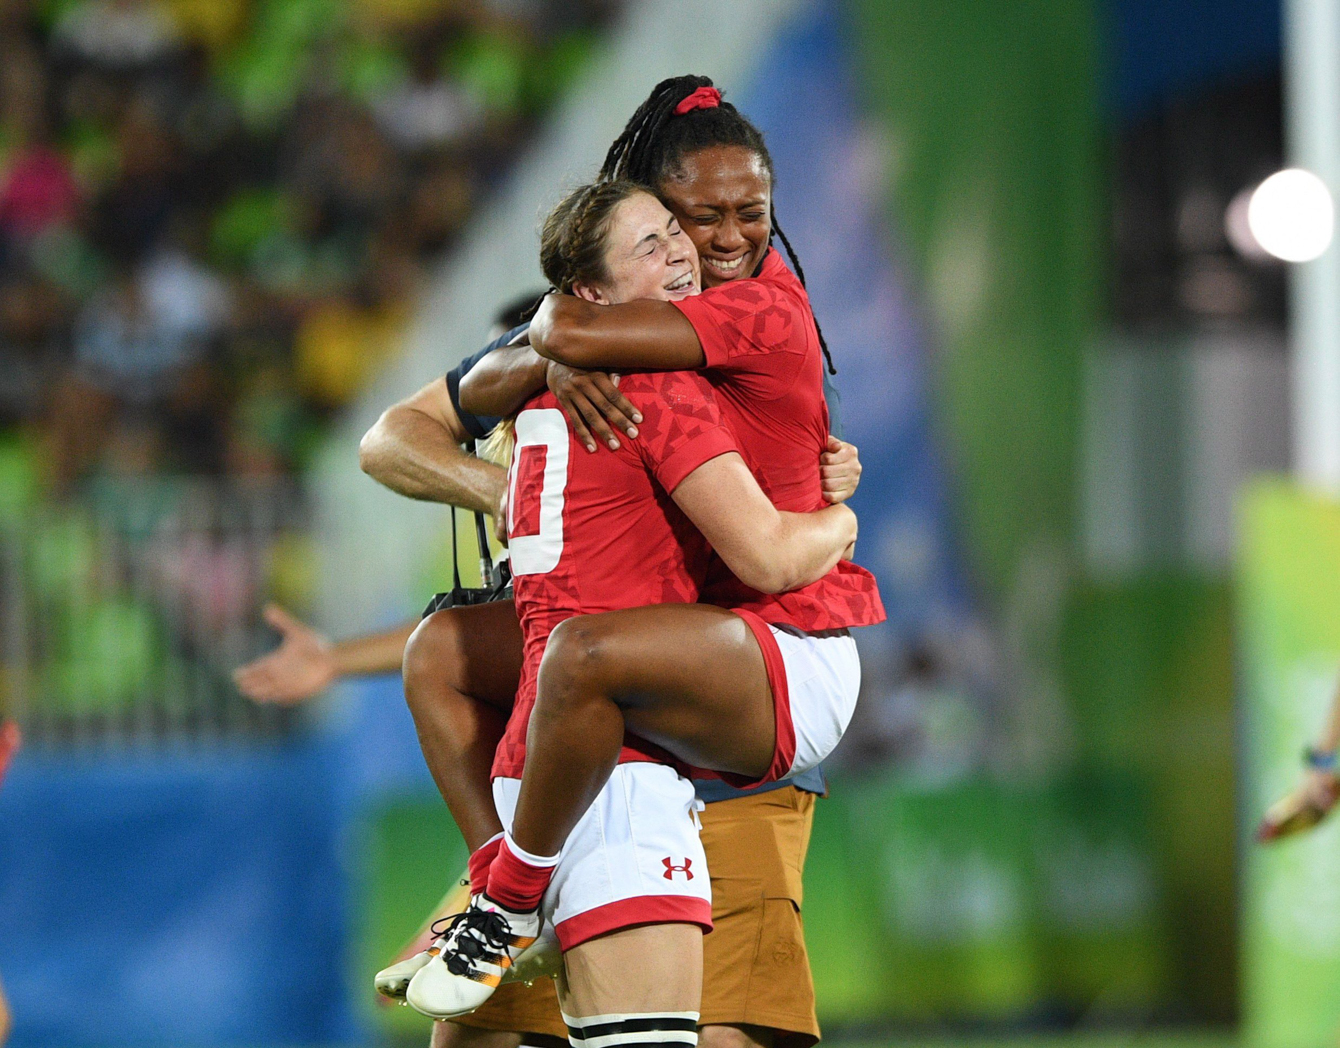 Canada's Charity Williams, right, jumps into the arms of Hannah Darling as they win bronze defeating Great Britain's in women's rugby sevens at the 2016 Olympic Summer Games in Rio de Janeiro, Brazil on Monday, Aug. 8, 2016. THE CANADIAN PRESS/Sean Kilpatrick